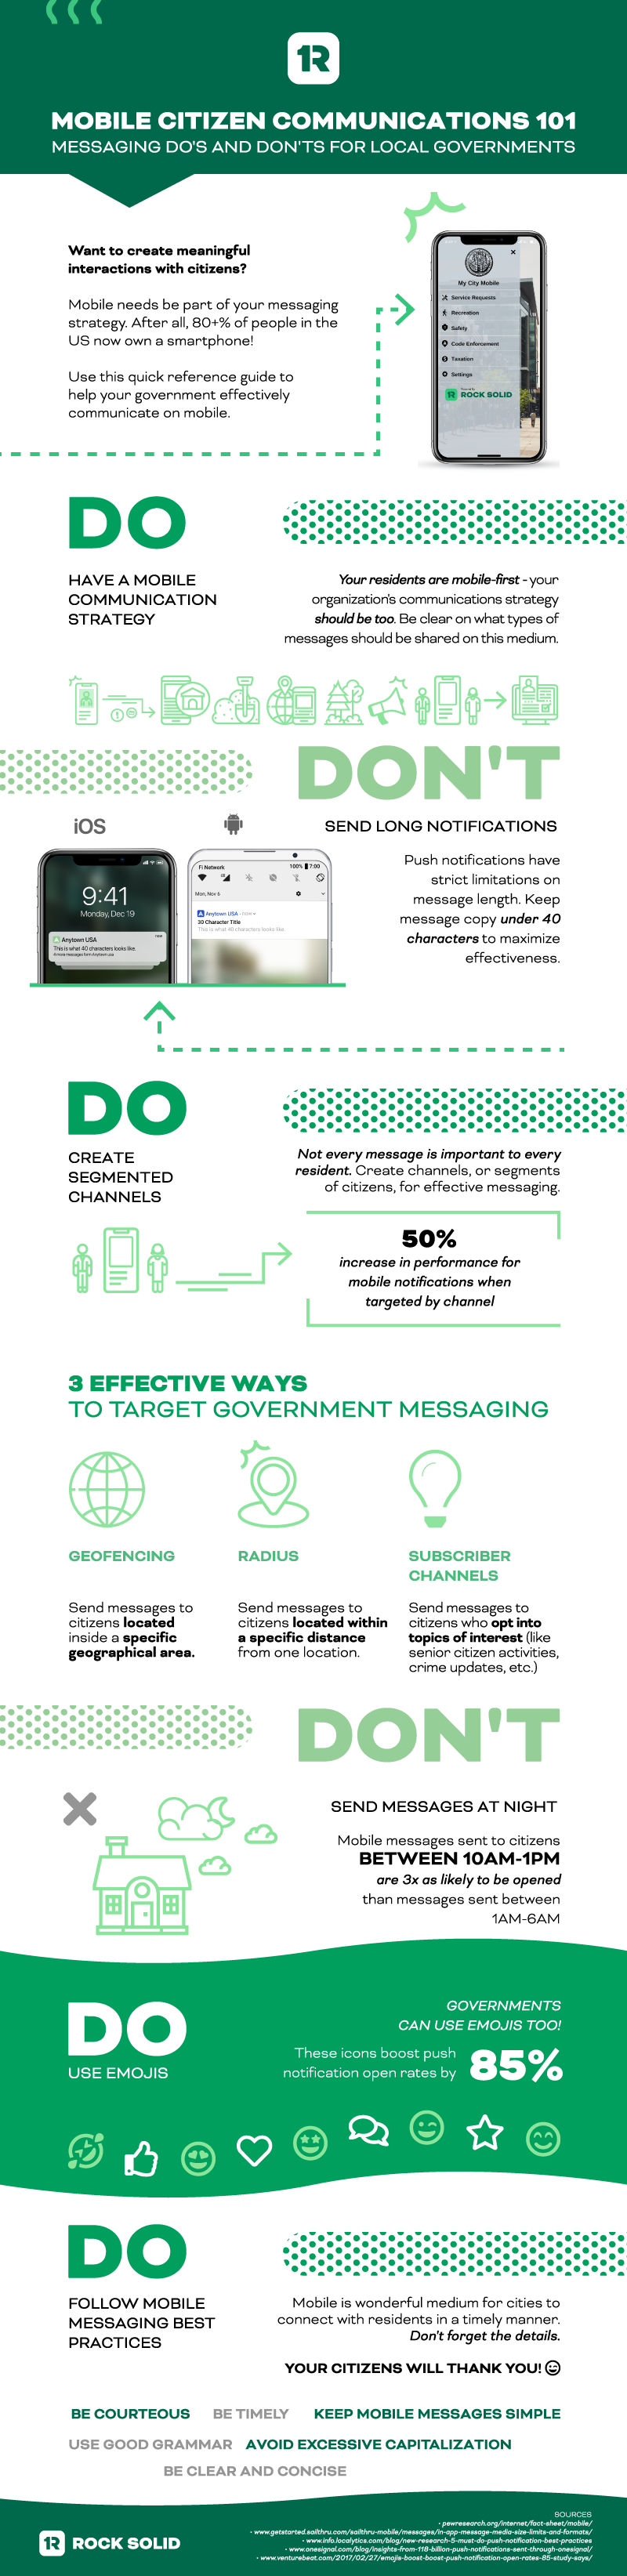 infographic featuring mobile messaging best practices and do's and don'ts for local governments | rocksolid.com